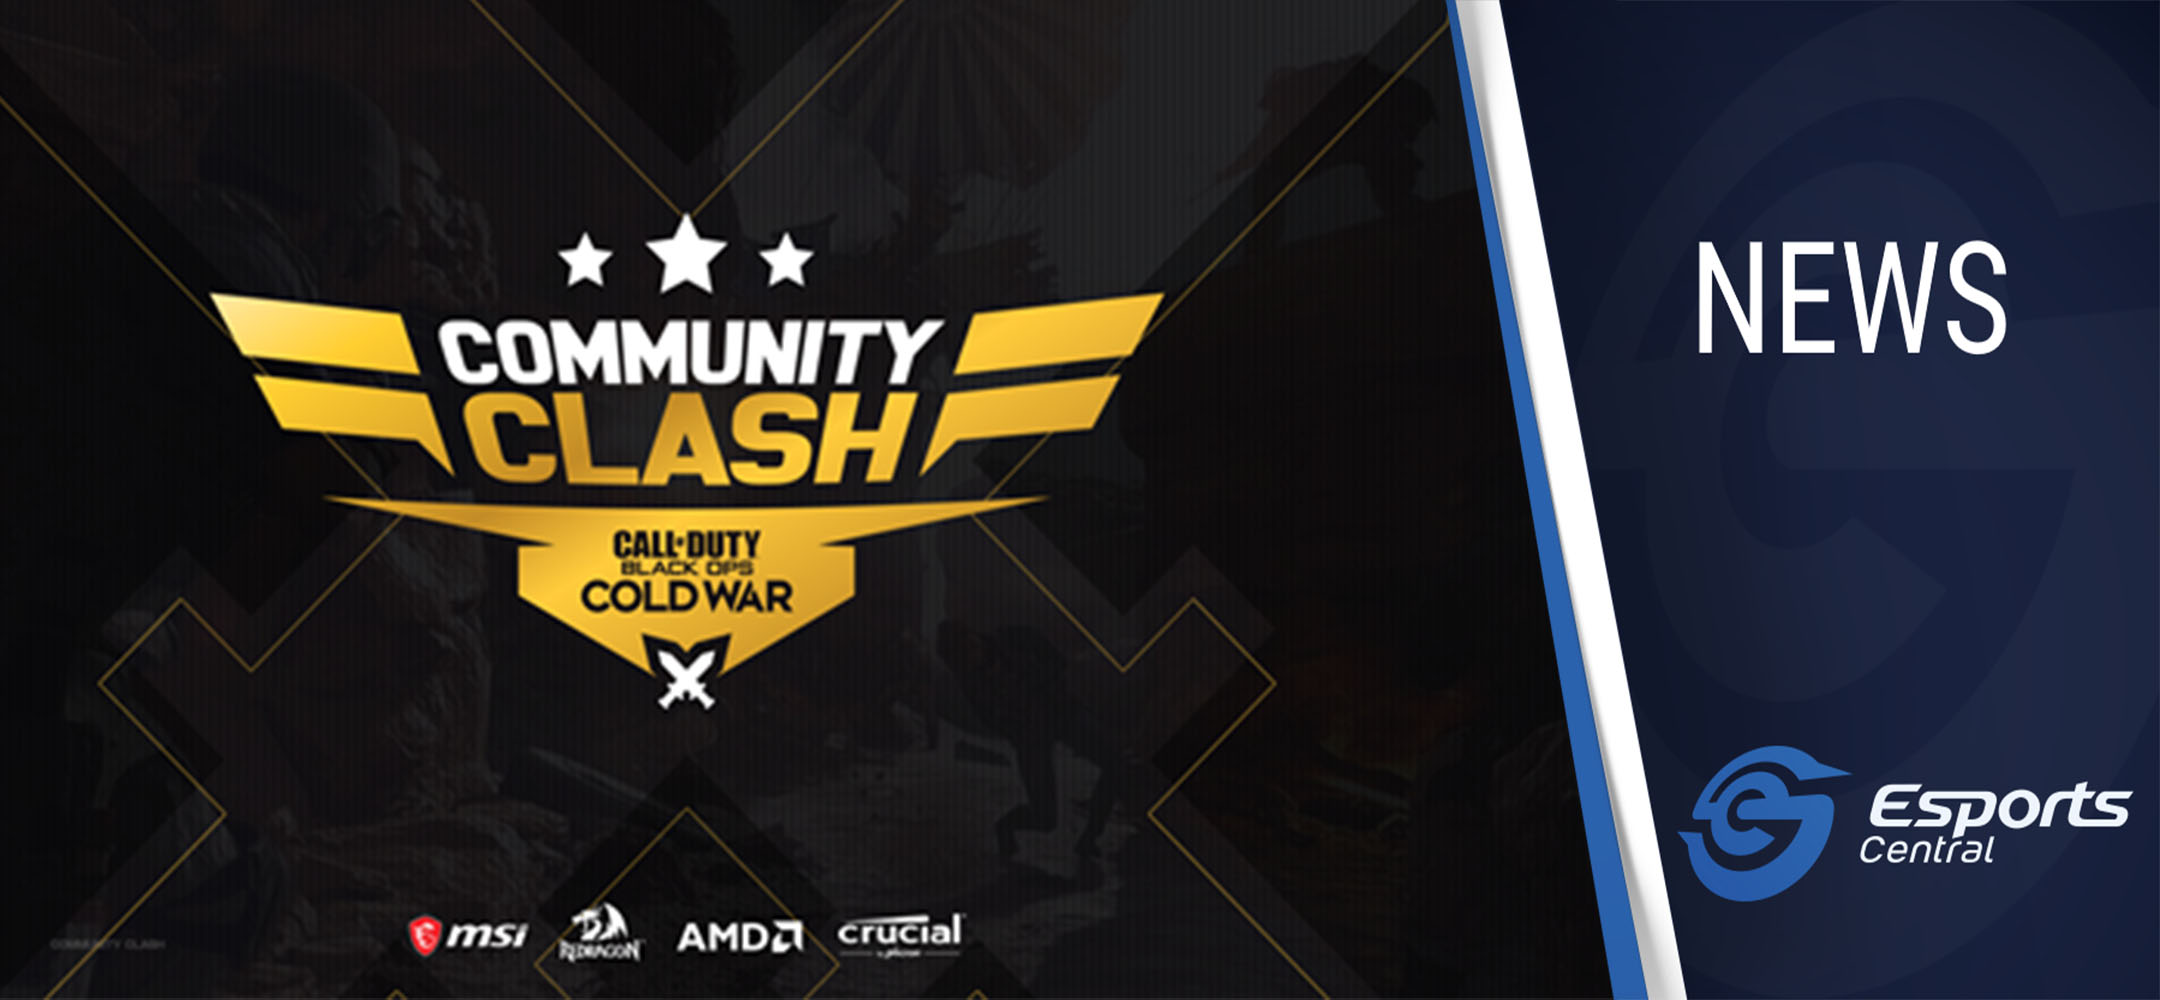 call of duty cold war community clash